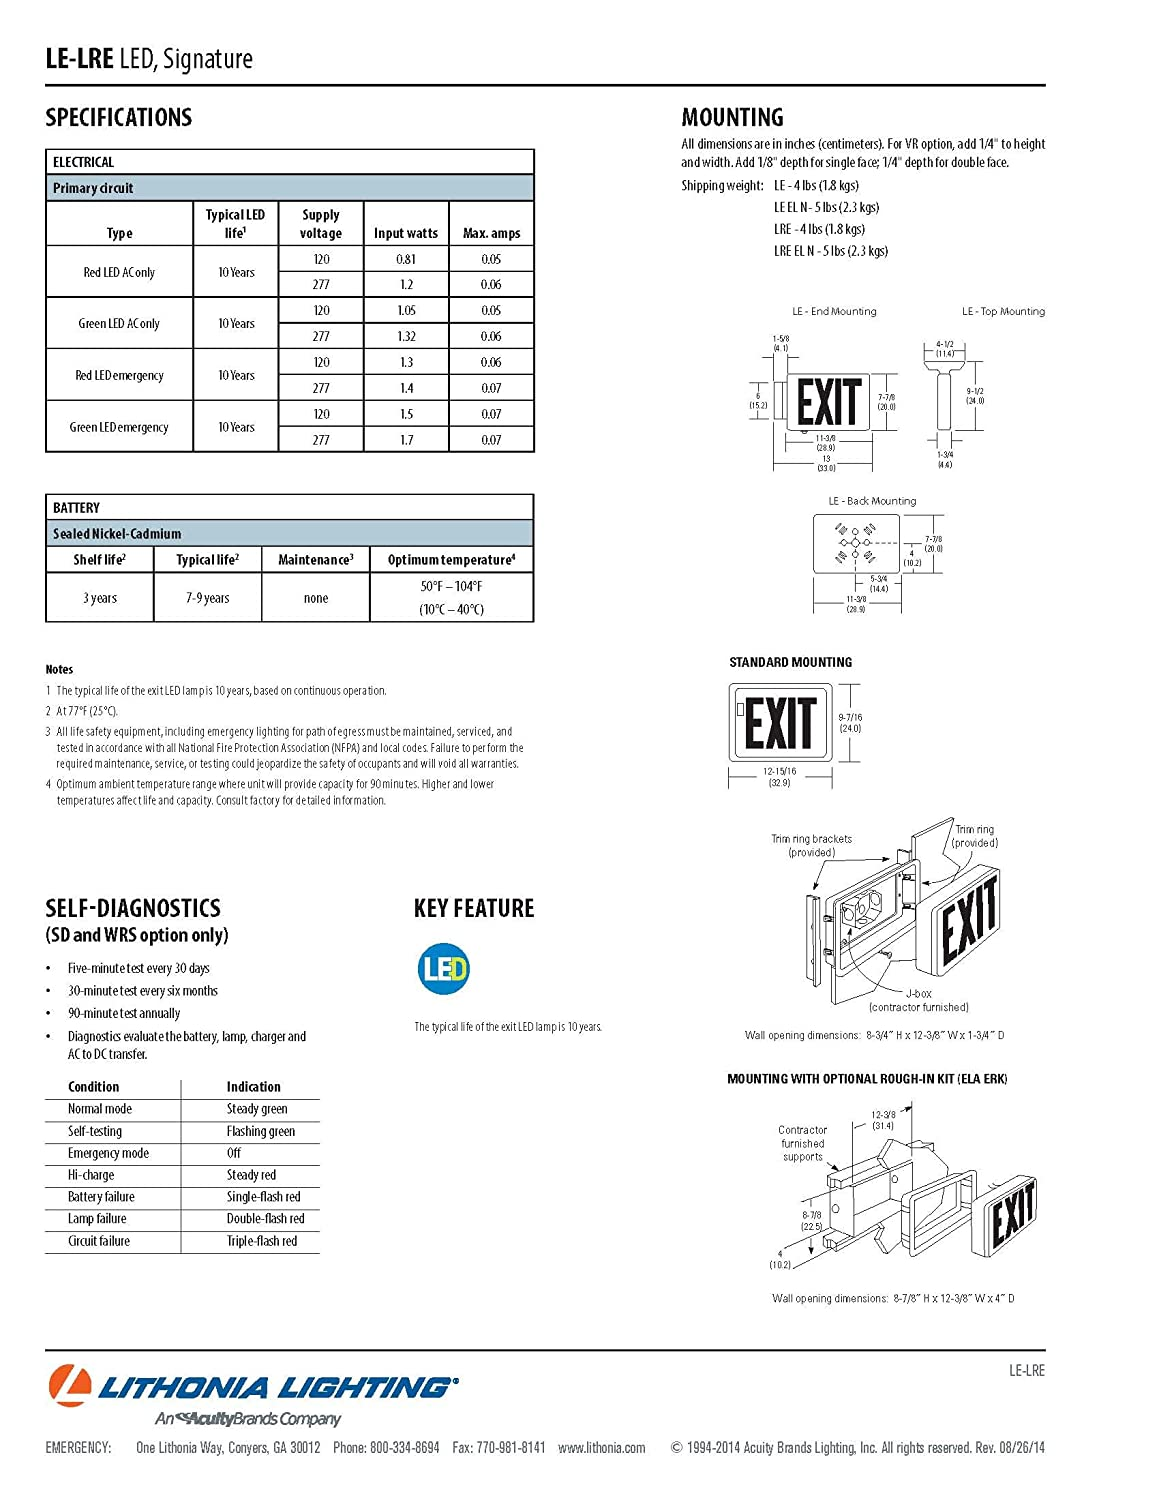 81zpb1y06LL._SL1500_ exit sign schematic wiring diagram simonand lithonia exit sign wiring diagram at mifinder.co